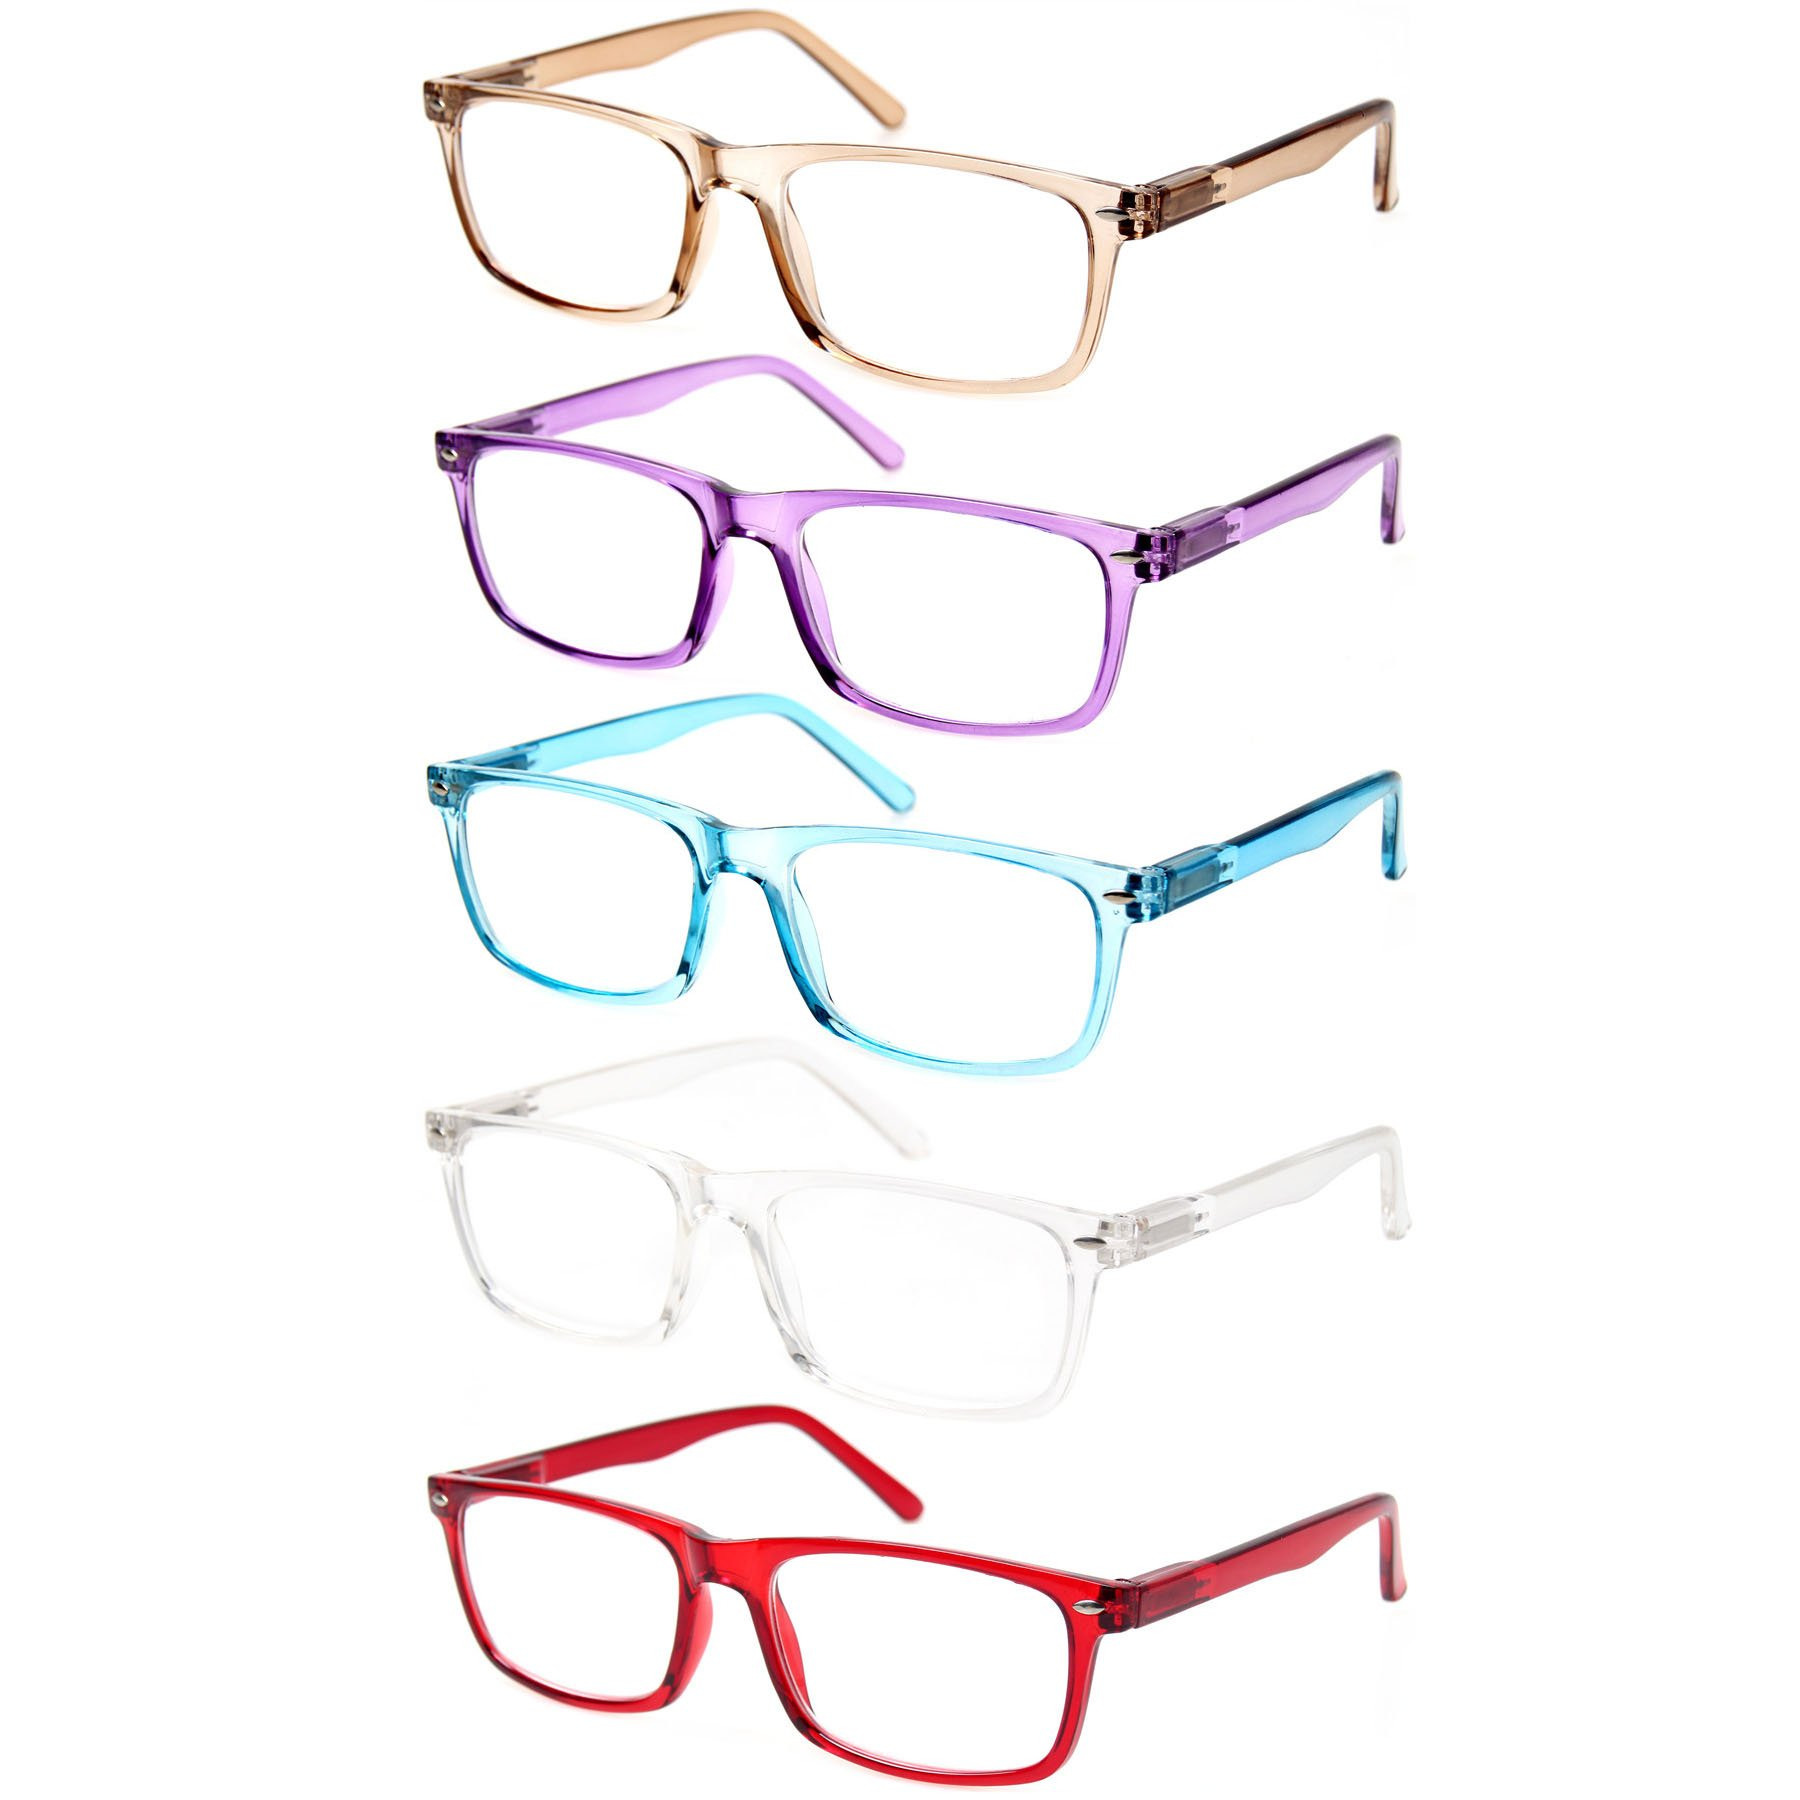 Reading Glasses 5 Pack Great Value Quality Fashion Men and Women Unisex Glasses for Reading (5 Pack Mix Color, 1.50)